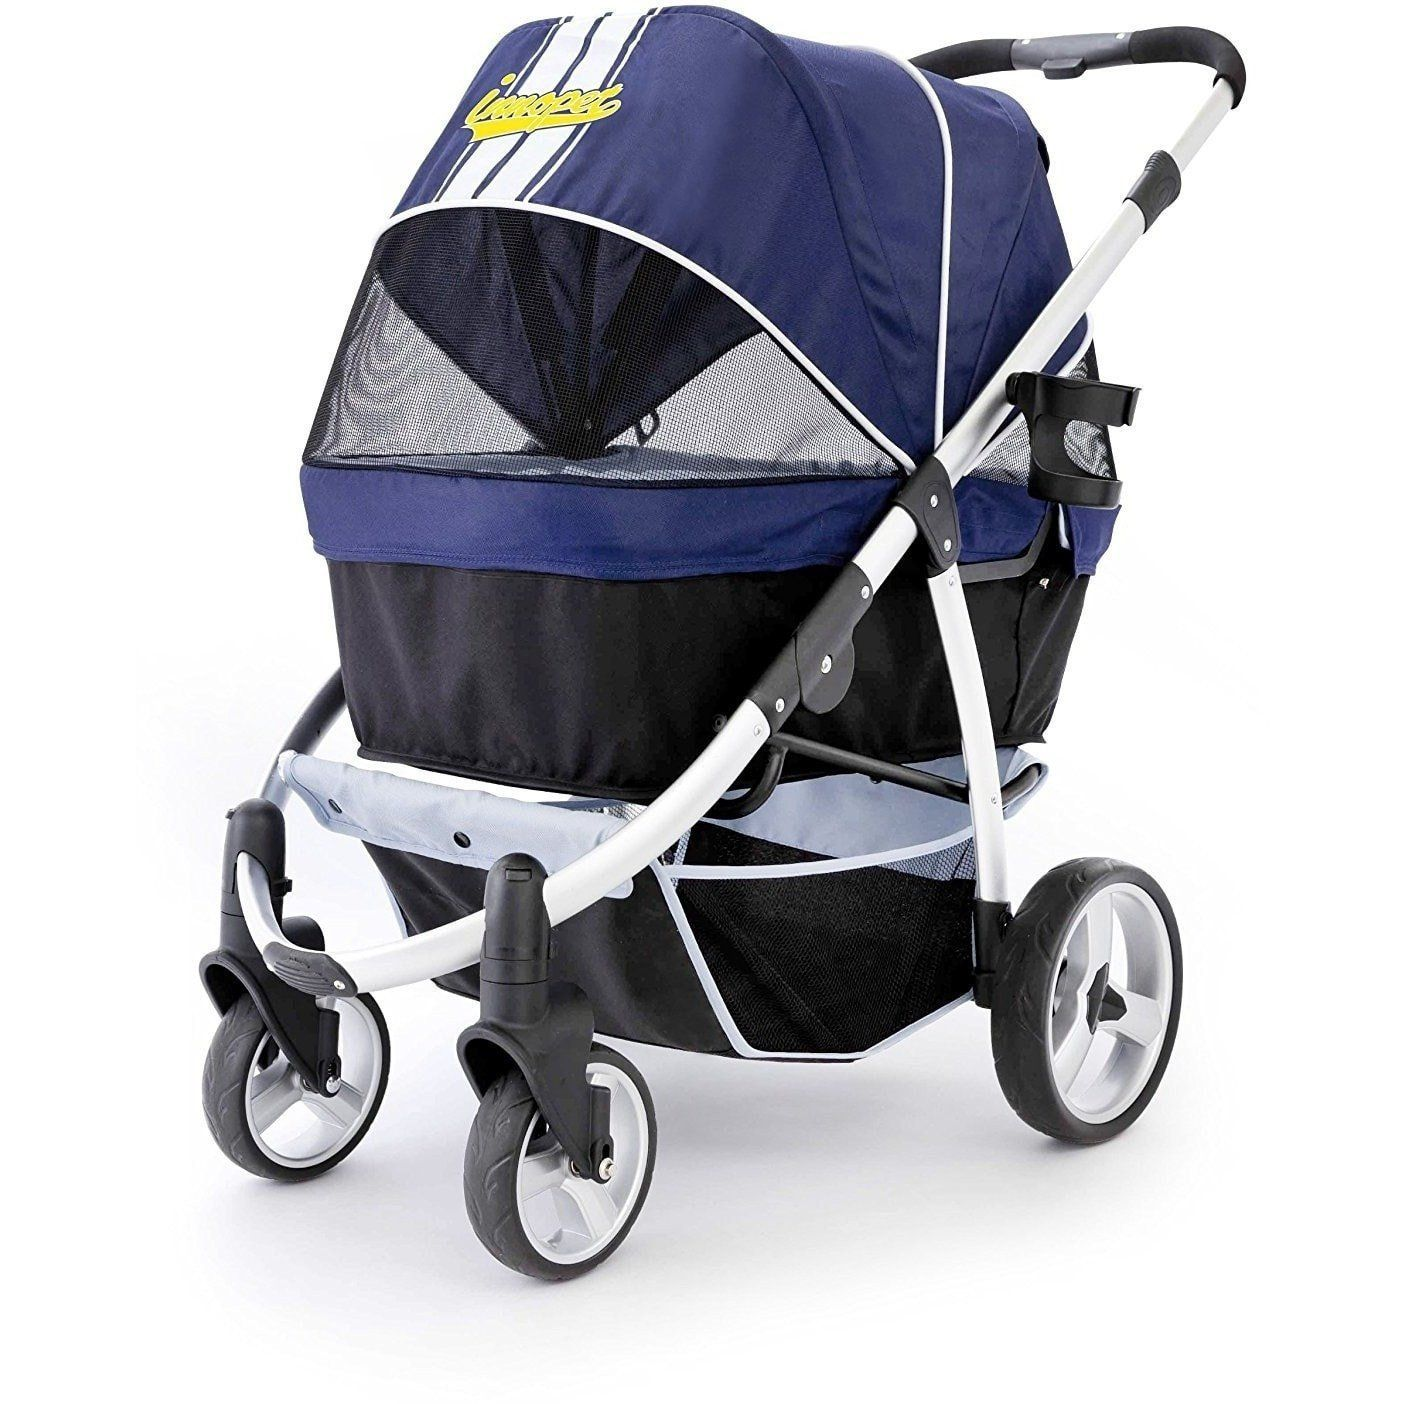 Retro Pet Stroller by Innopet Navy Blue Dog stroller